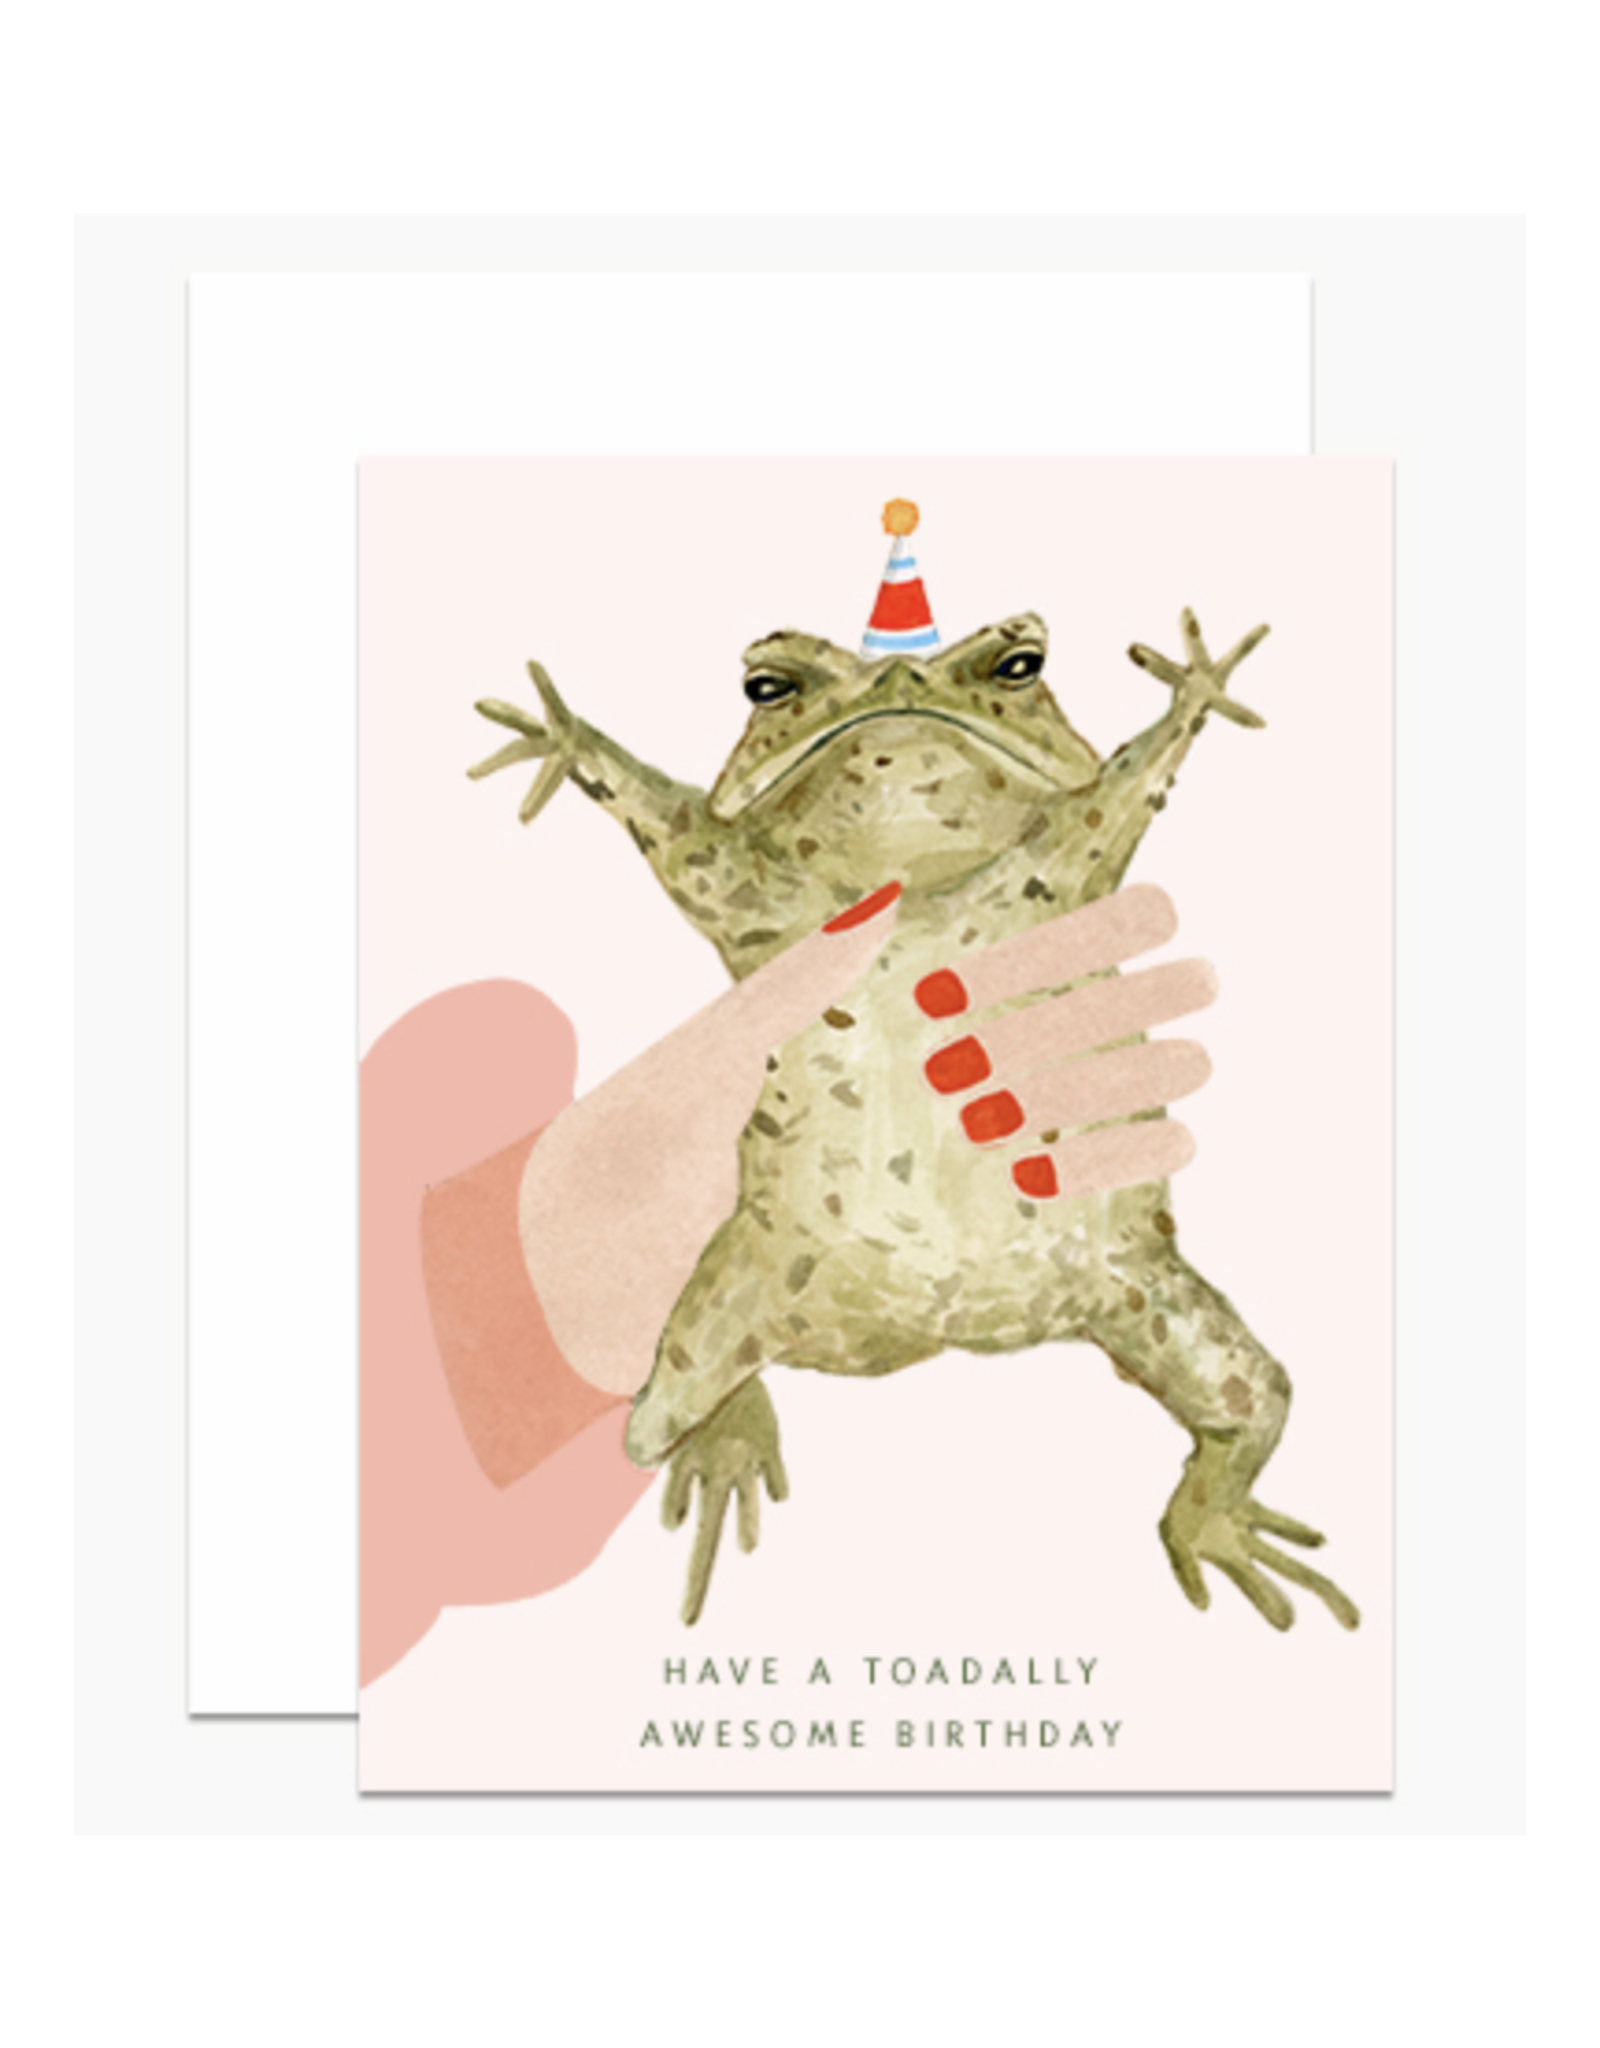 Have a Toadally Awesome Birthday Greeting Card